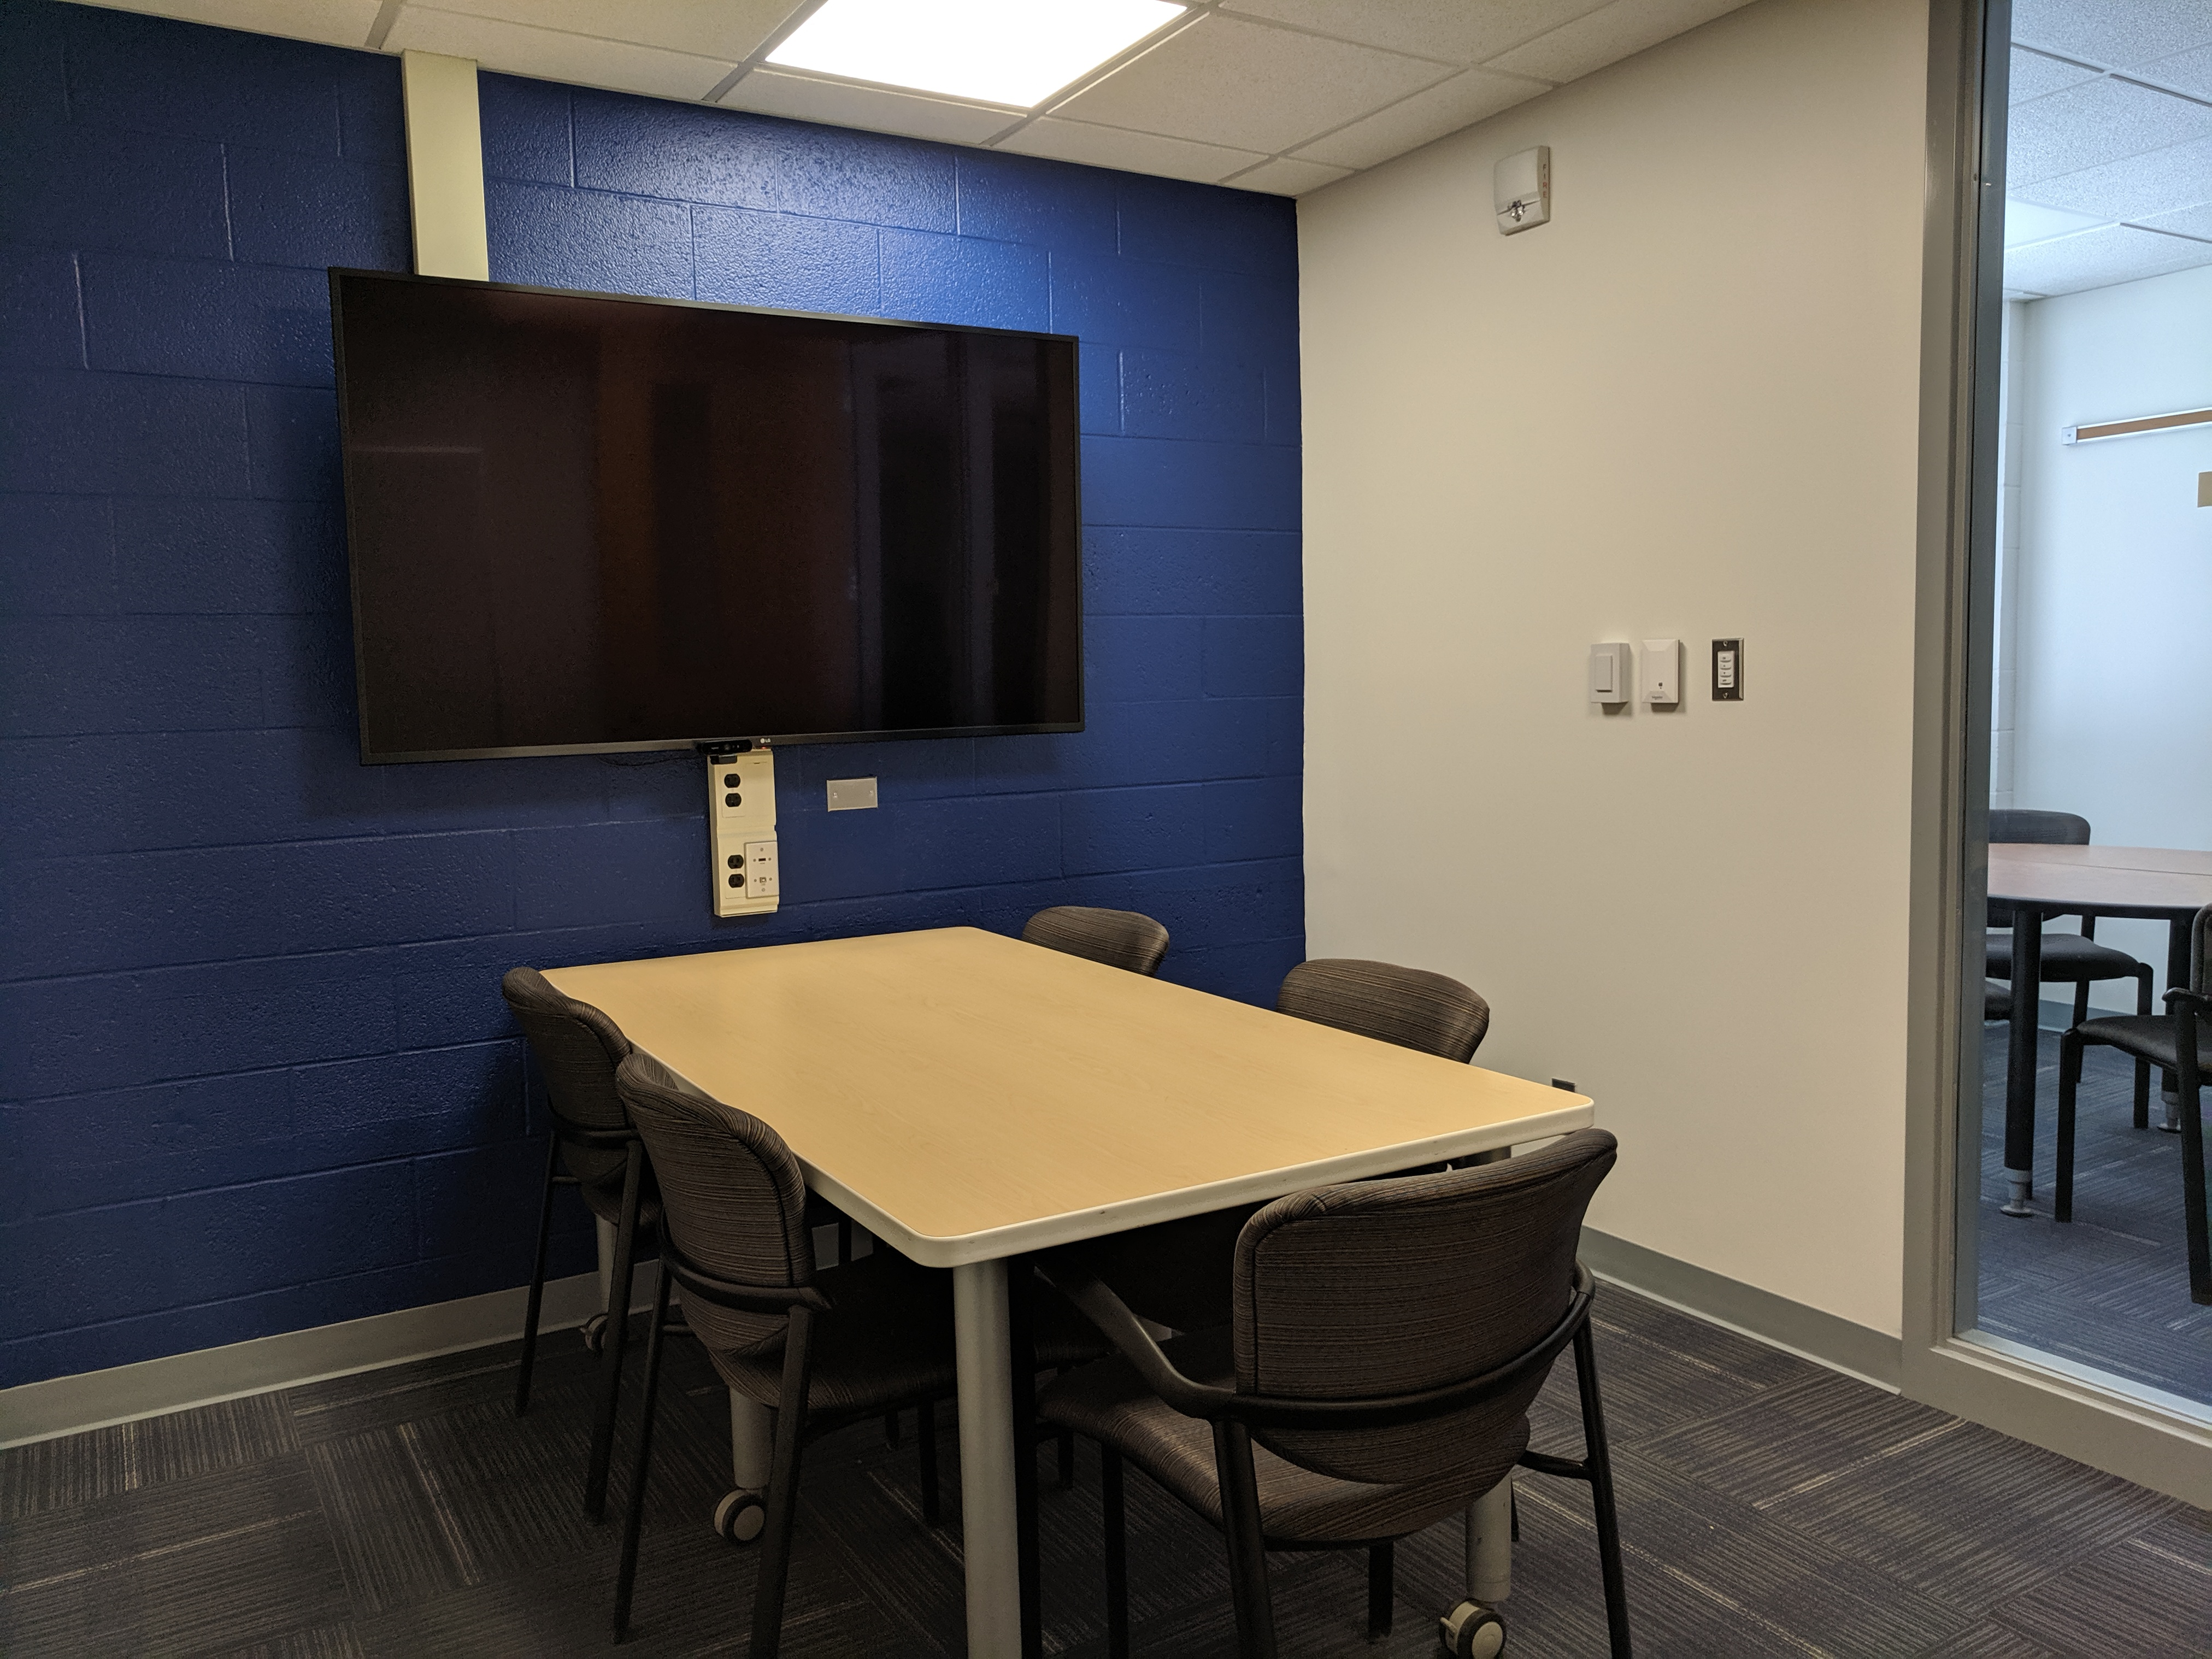 Activity Breakout Room